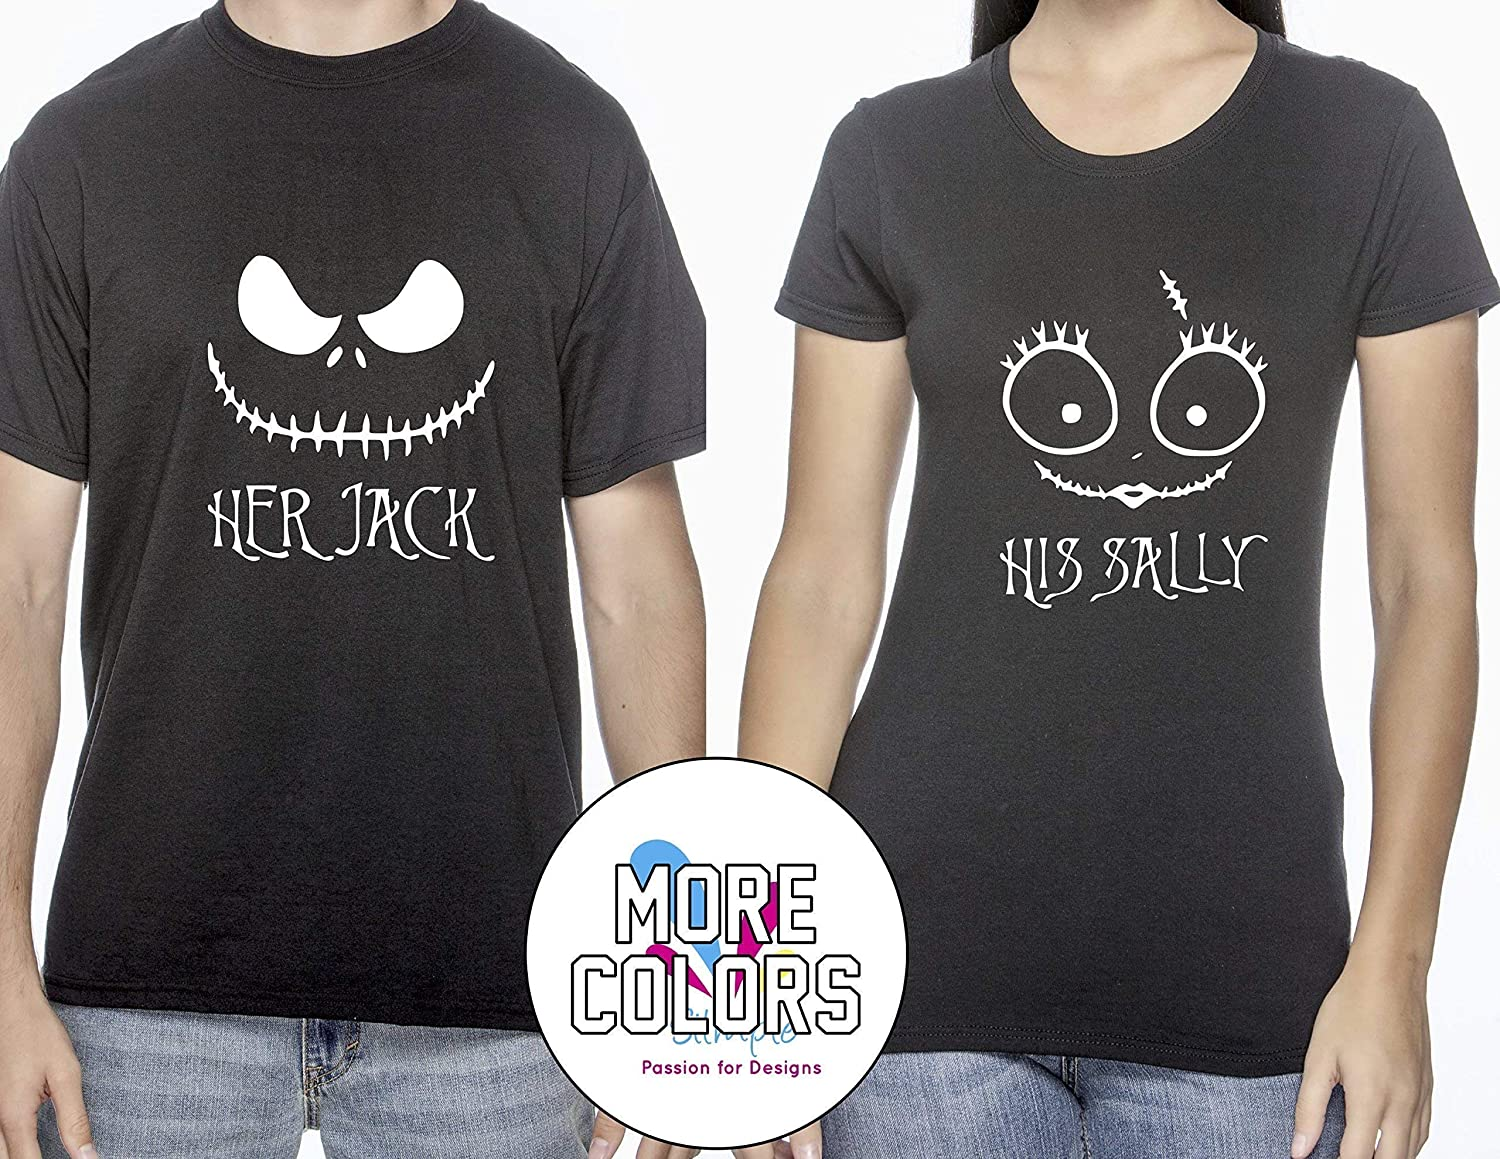 947be427d6 Amazon.com: Her Jack/His Sally Nightmare Before Christmas Romantic Couples  T-Shirts Matching Shirt T-Shirt Funny Tee Gift for Him Her Halloween:  Handmade